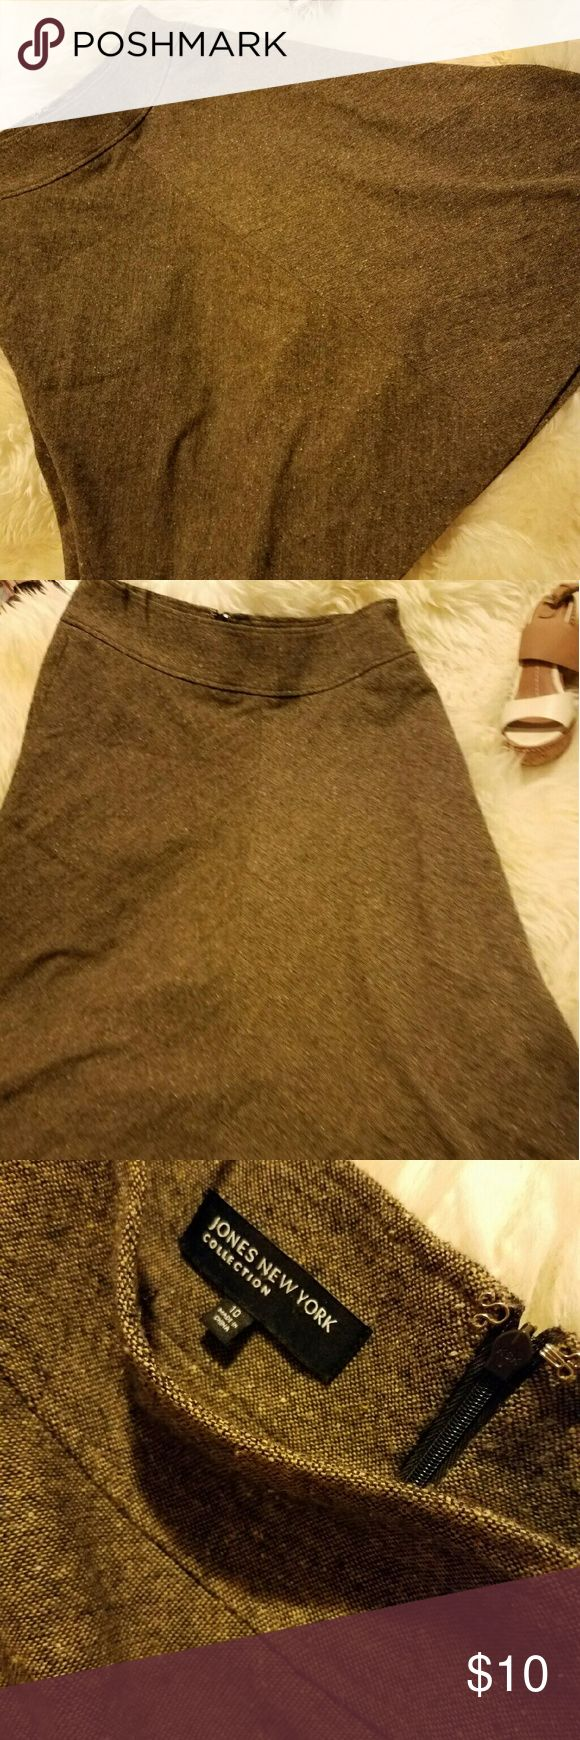 Jones of New York wool brown flowy skirt flowy wool skirt 1940s mode  size 10 Jones of New York perfect for a silk neutral shirt and neutral shoes ... sturdy piece will last ages .....  buisness casual eclectic style Jones New York Skirts A-Line or Full